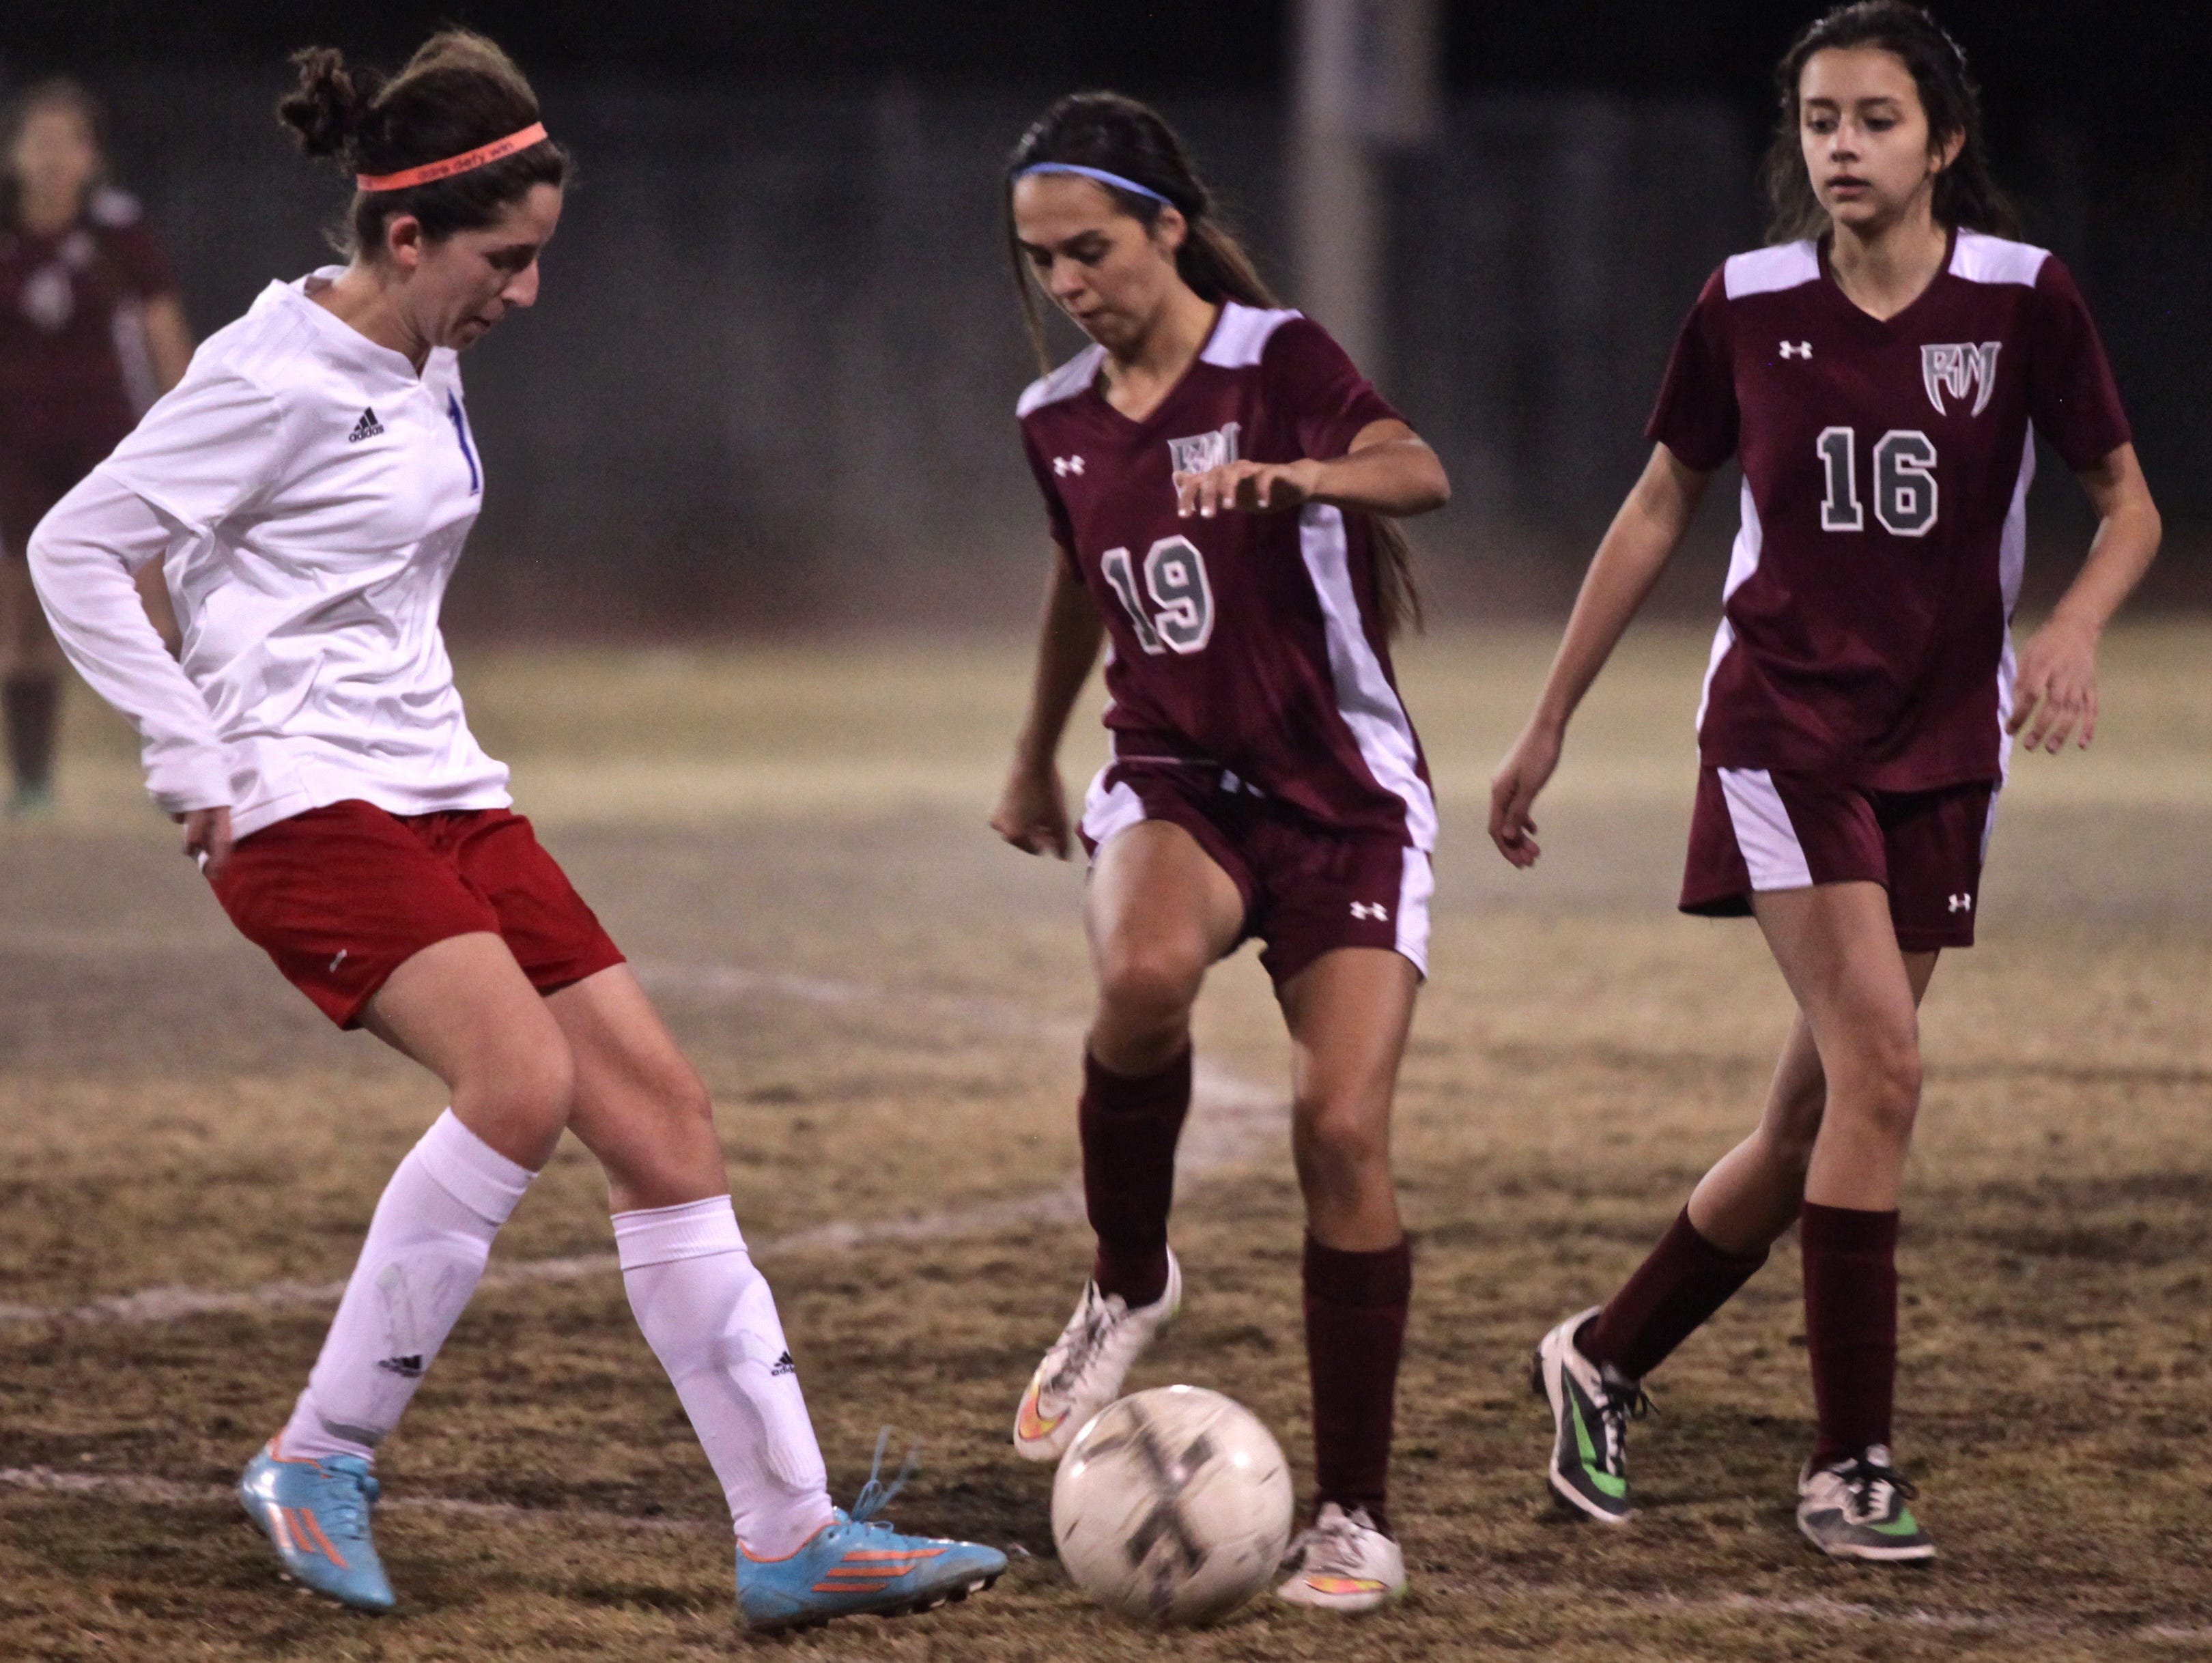 Rajahs' Galilea Cortez (16) and Rattlers' Fernanda Mercado (19) dispute the ball during a match between the teams in Indio on Tuesday.